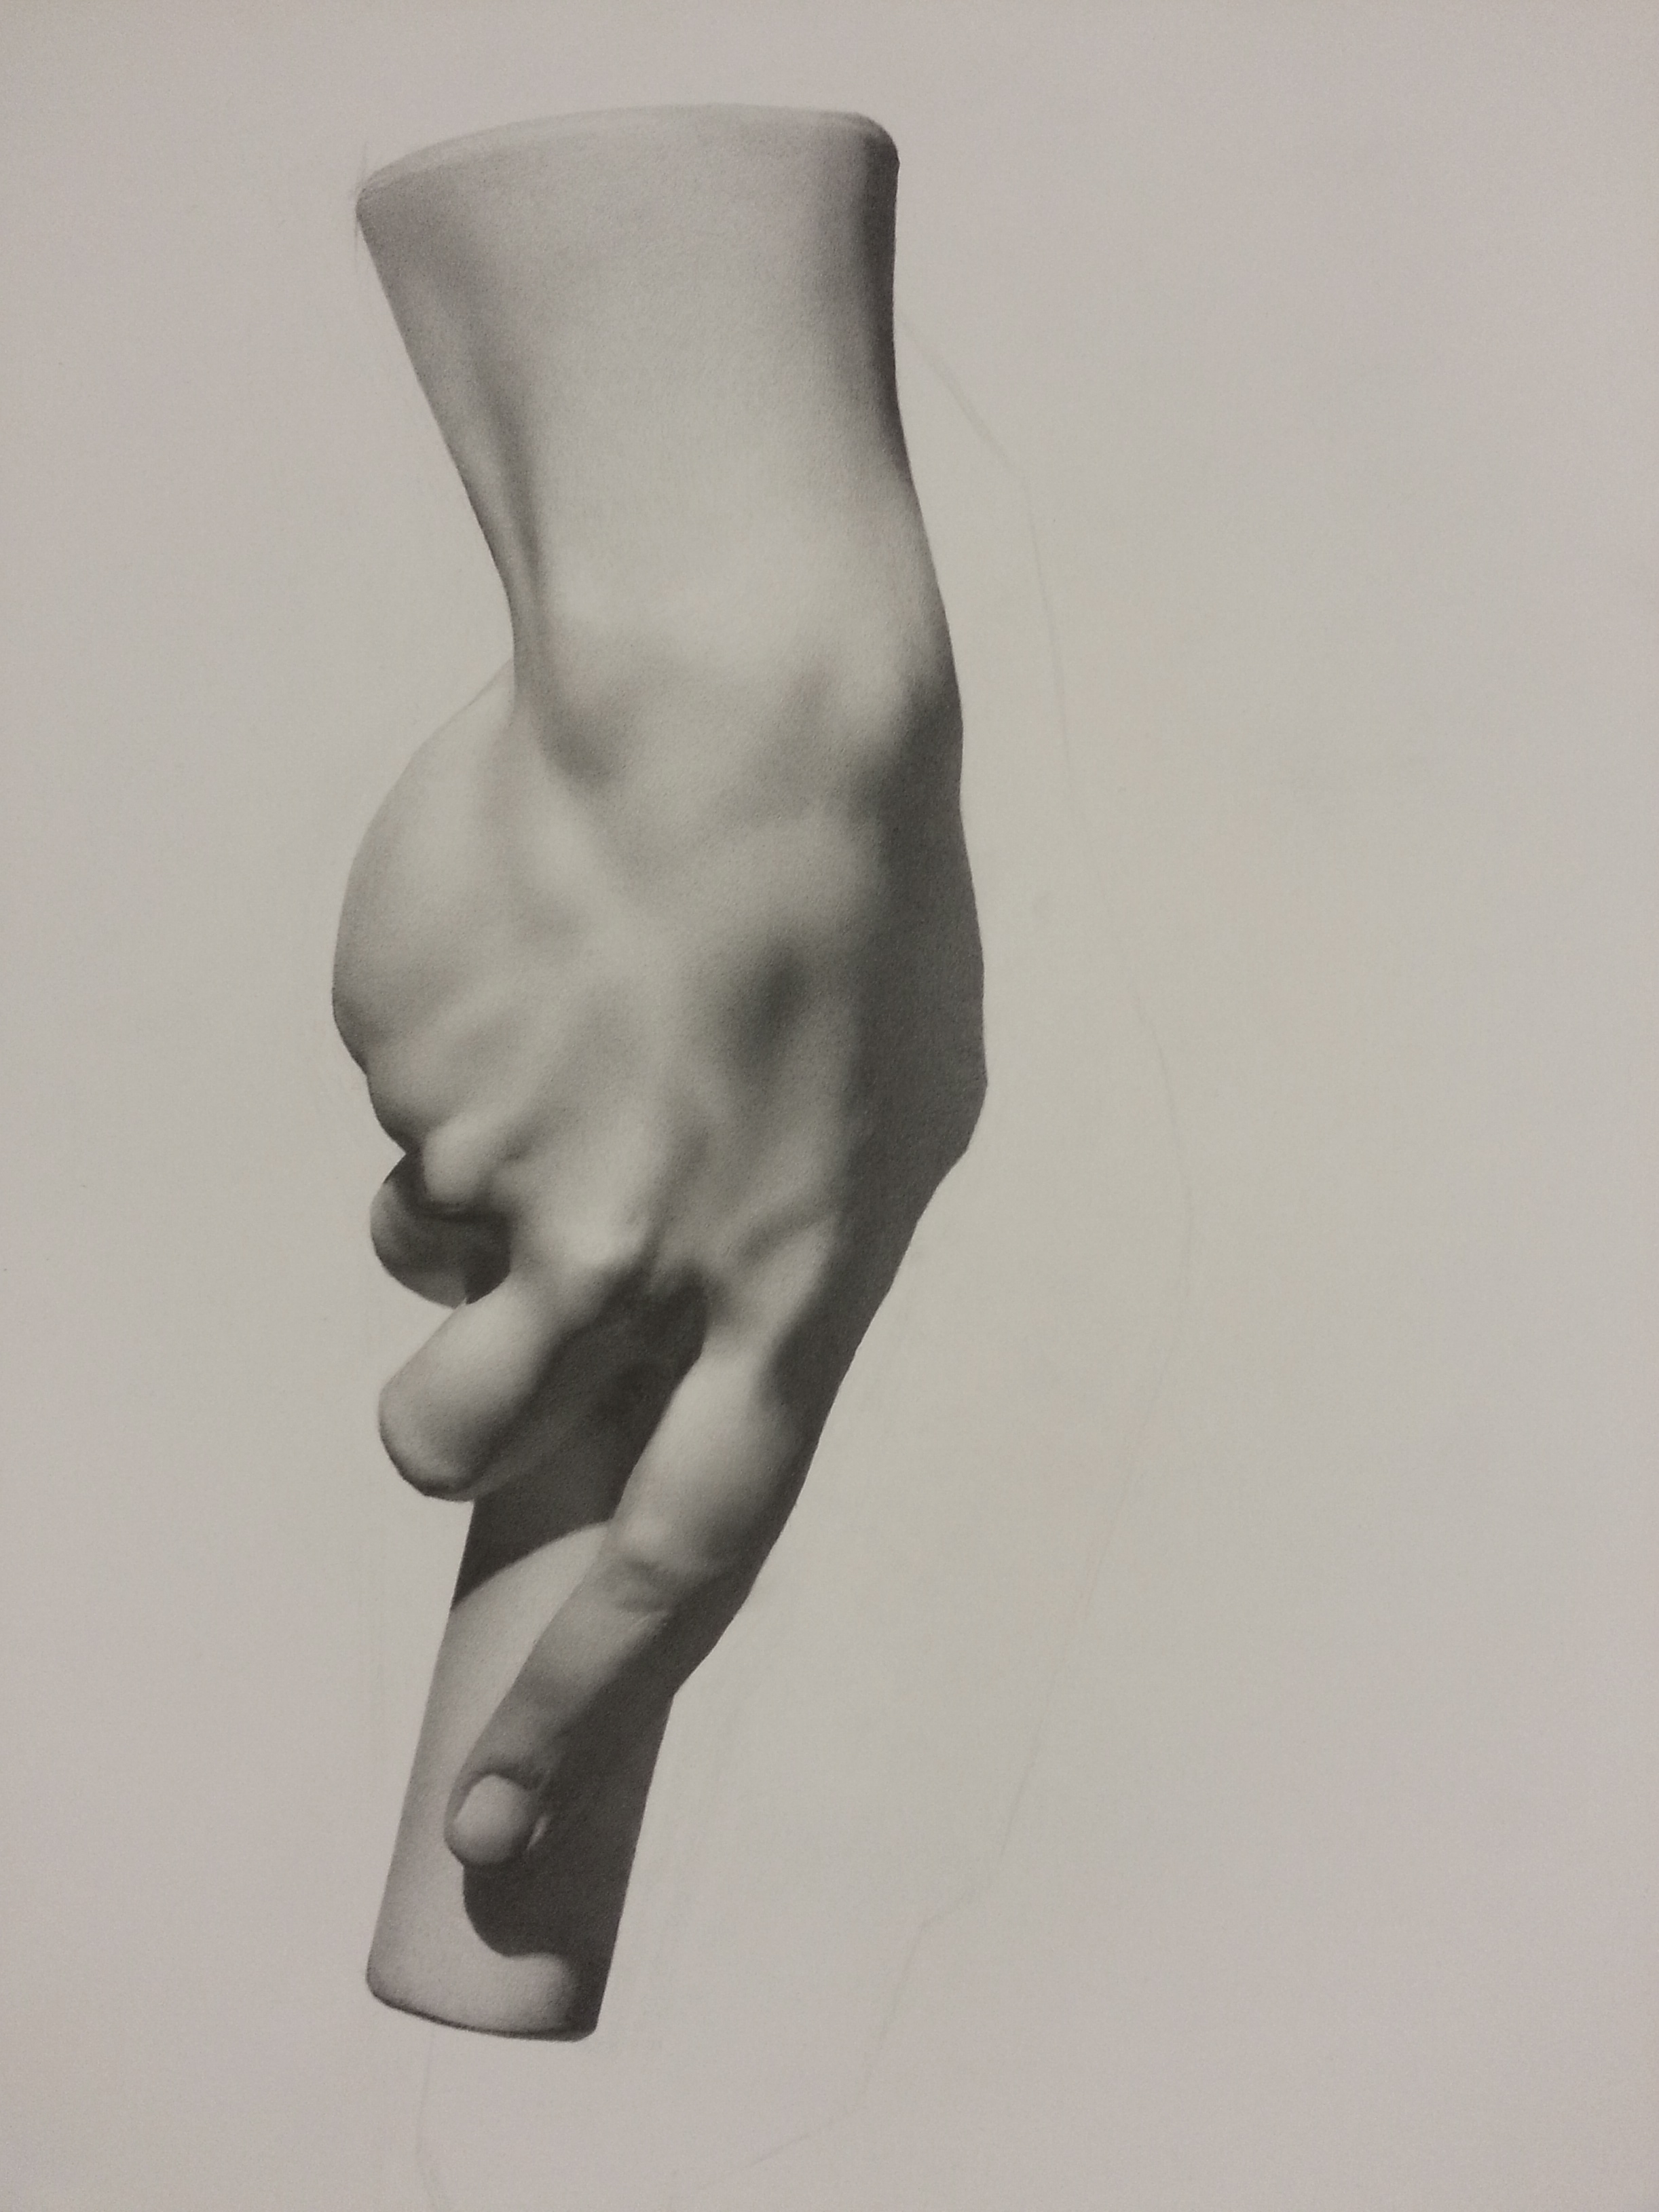 untitled male hand with pole